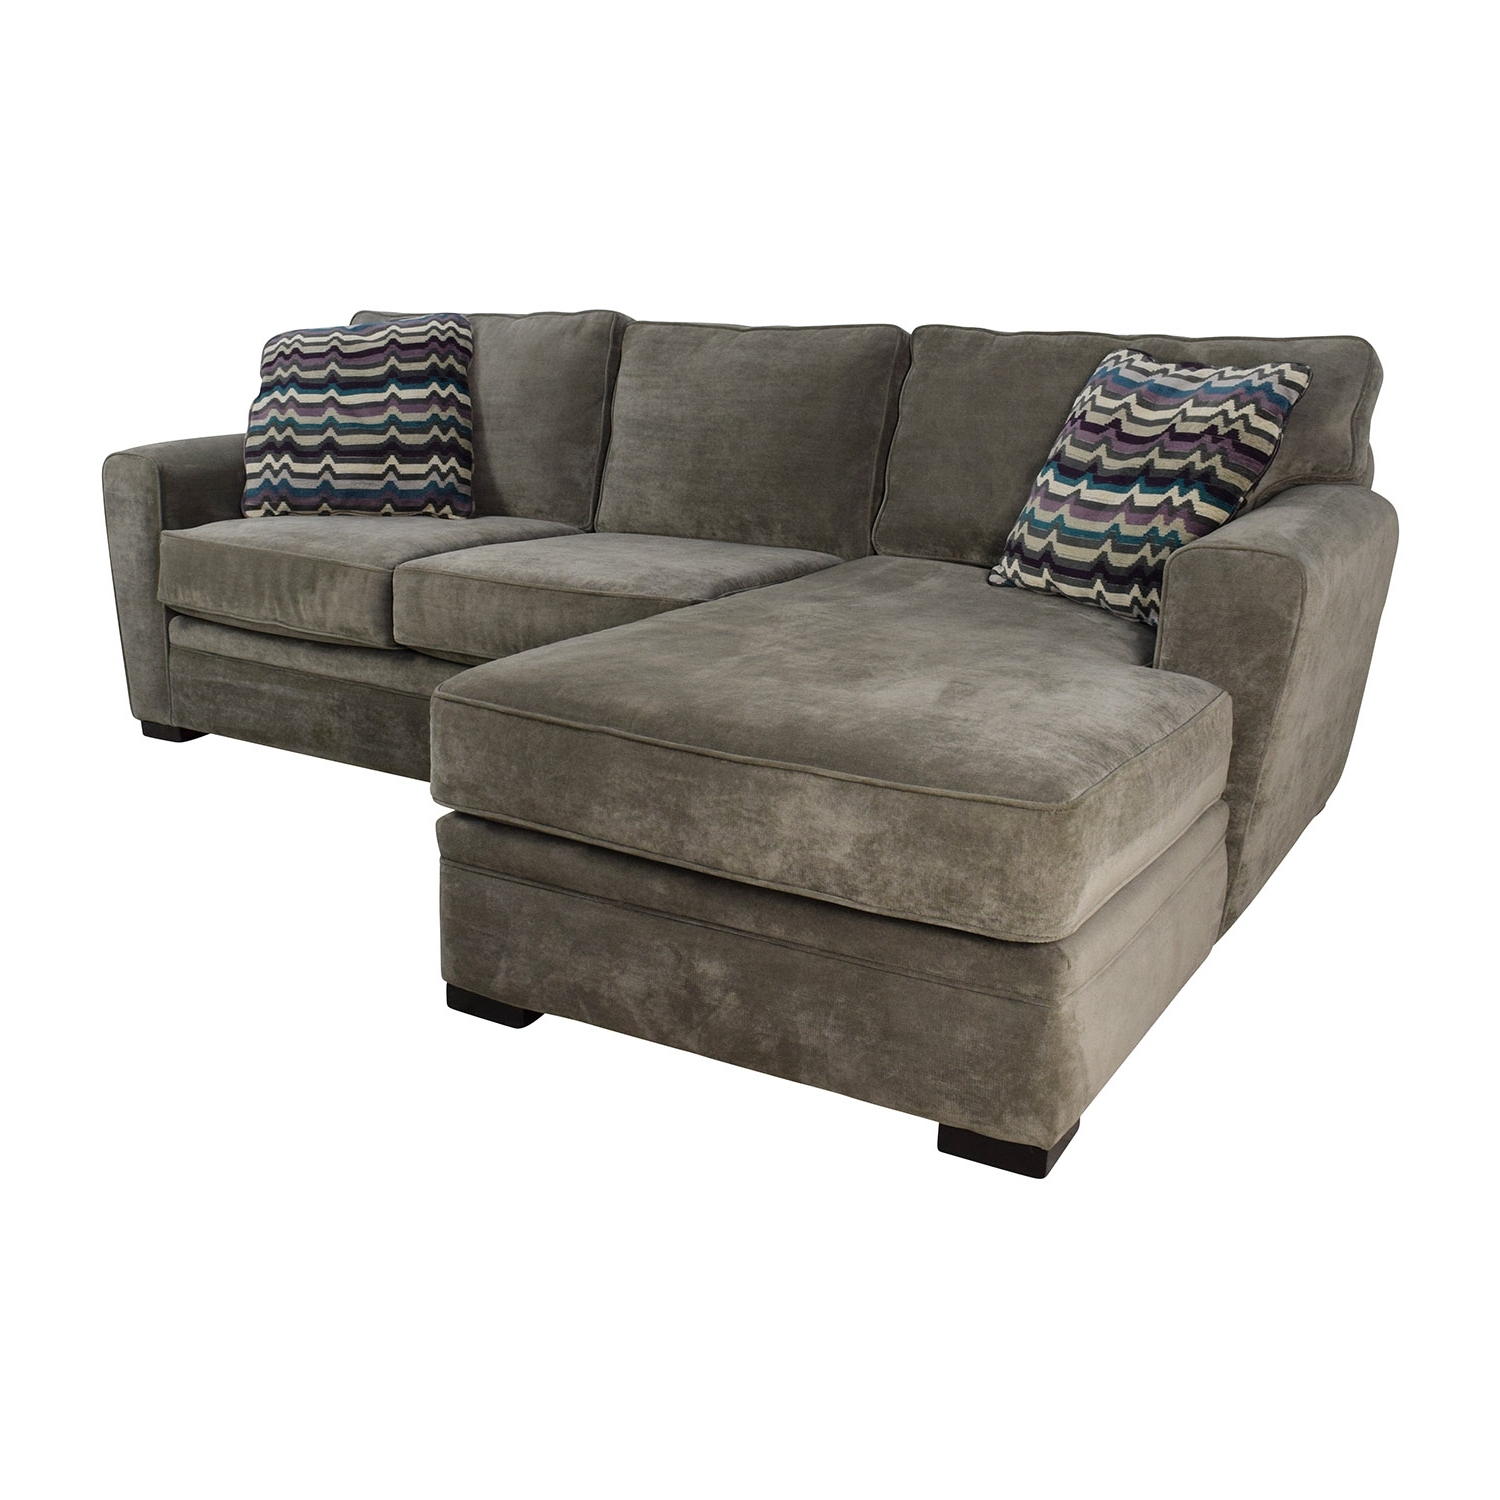 raymour and flanigan sectional sofas how big is a sofa table 20 collection of 52 off artemis ii throughout current